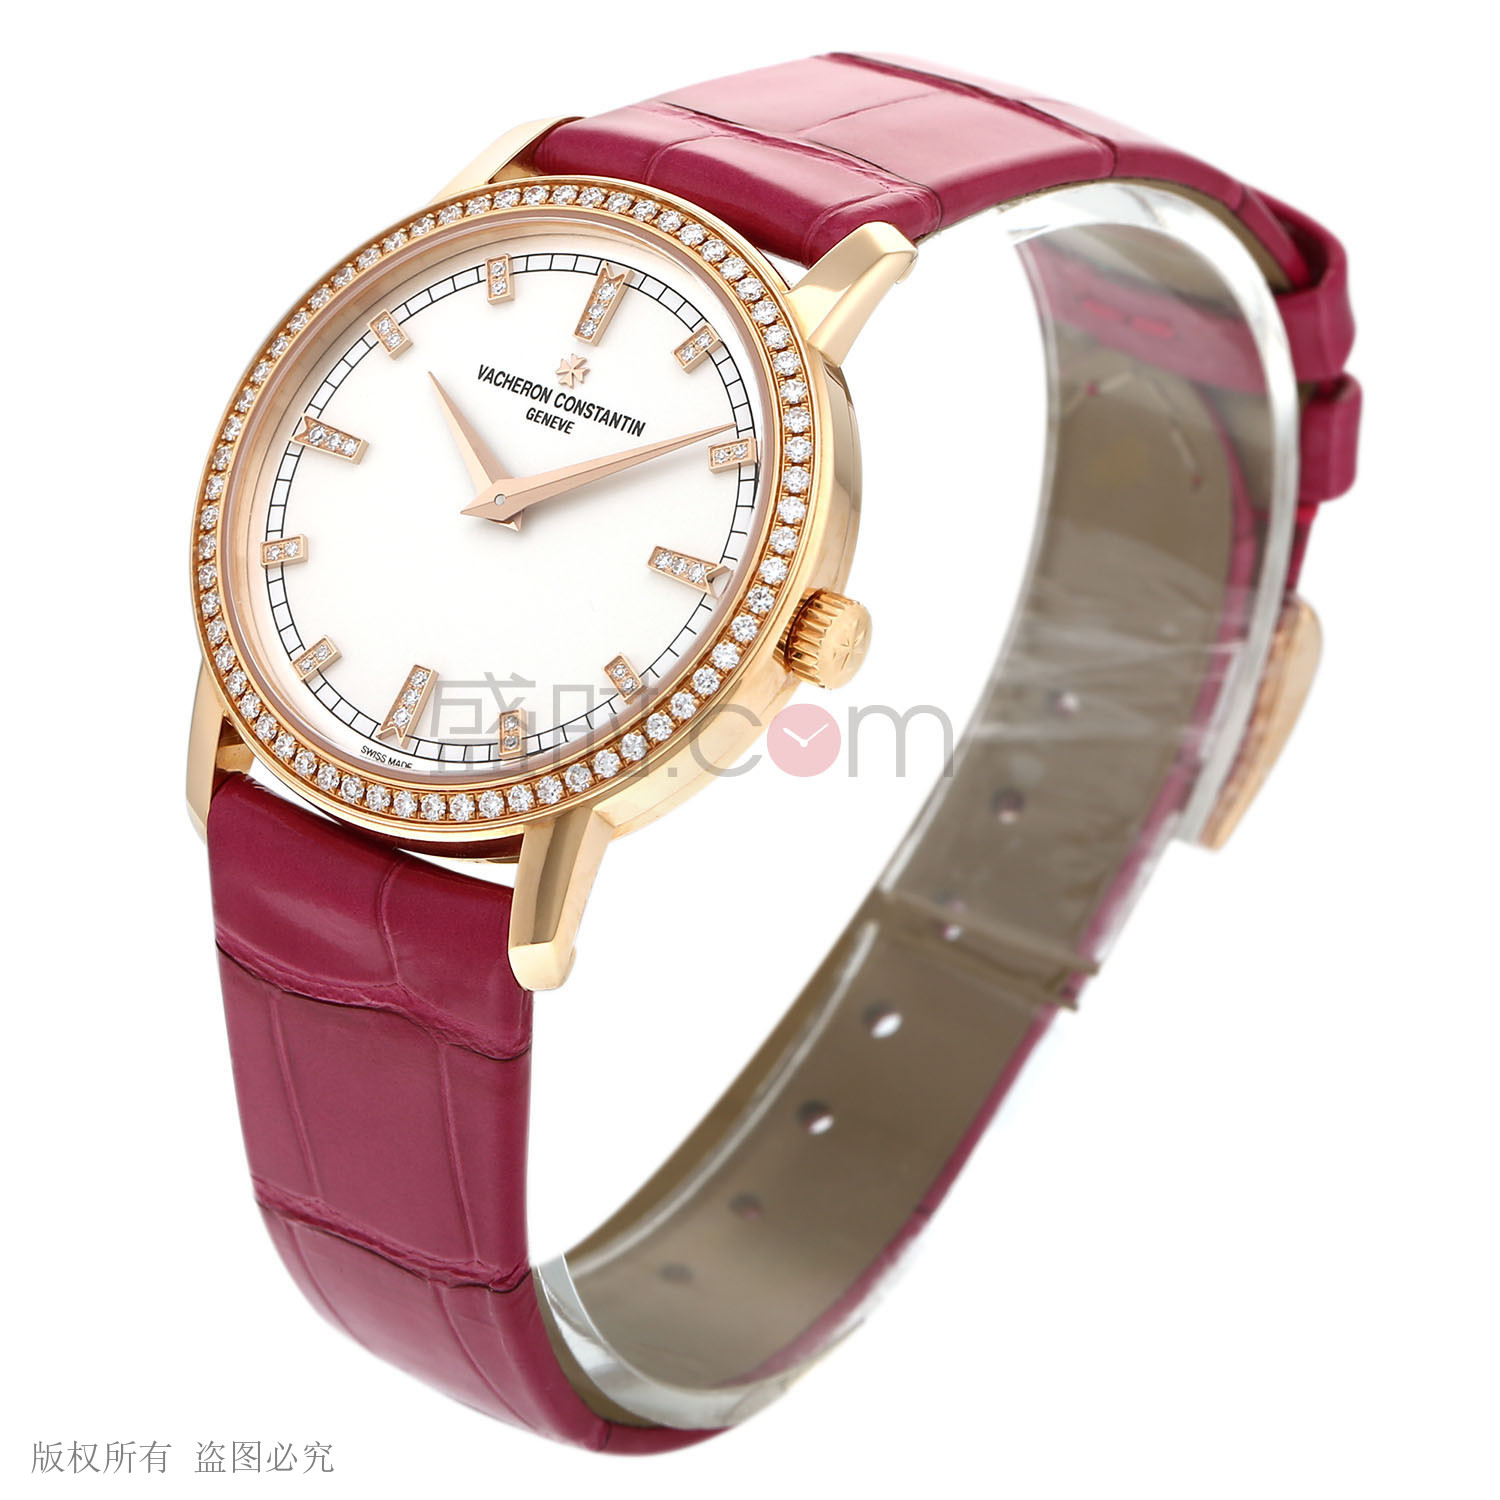 江詩丹頓 Vacheron Constantin TRADITIONNELLE系列 25558/000R-9406 石英 女款